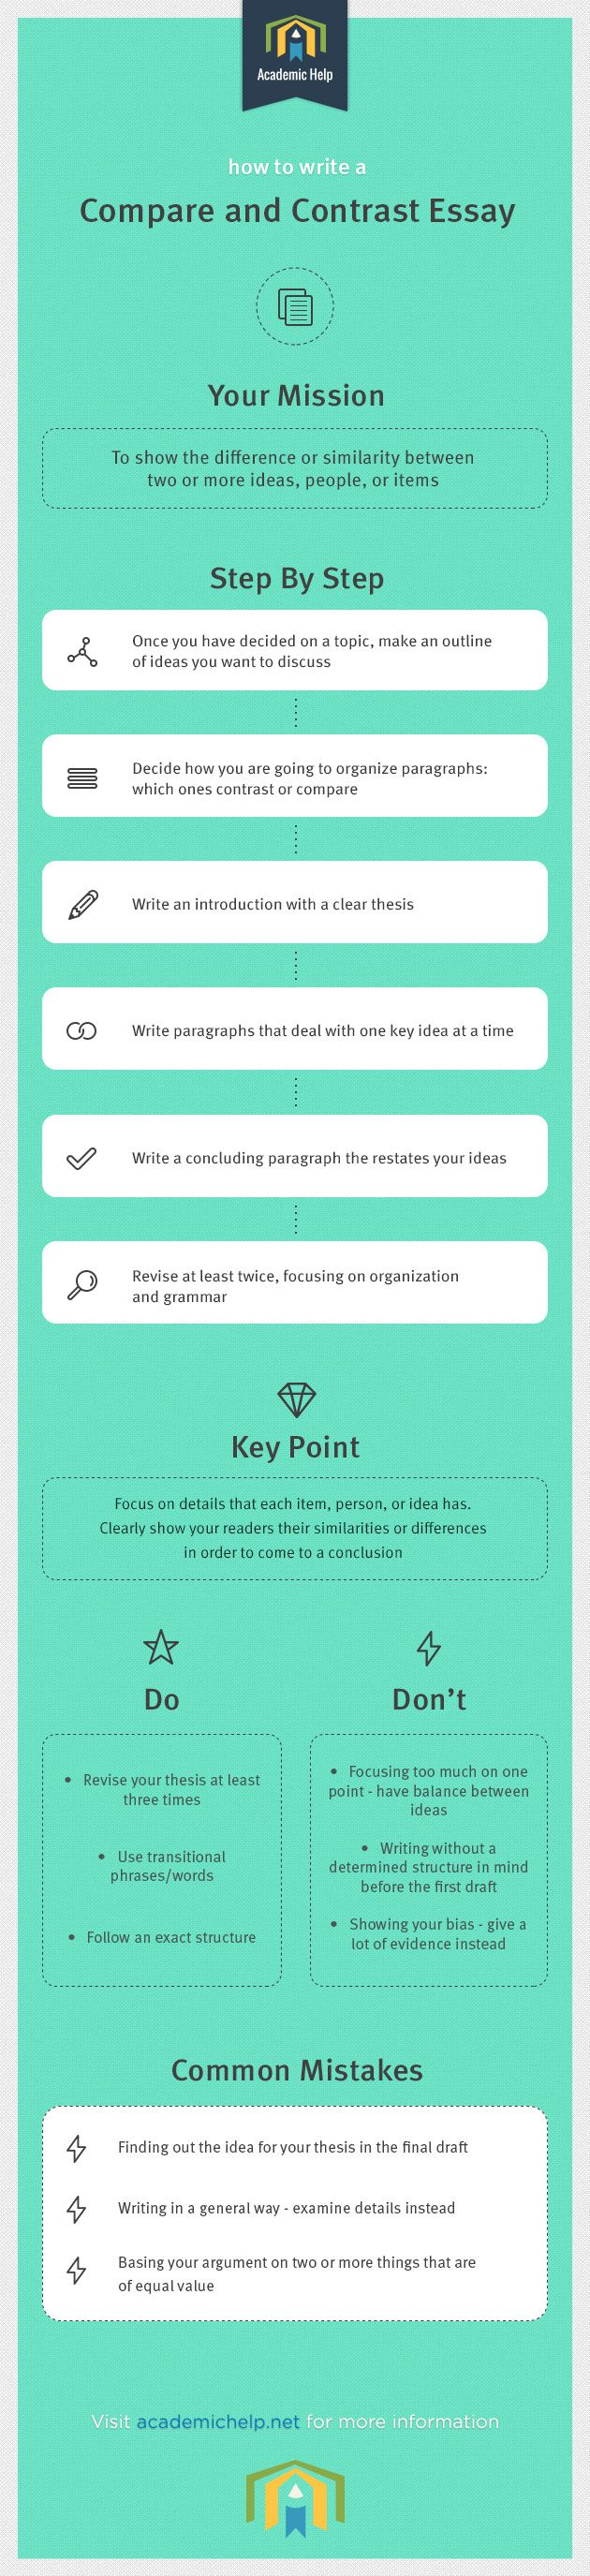 17 best images about compare contrast essay writing infographics on how to write a compare and contrast essay